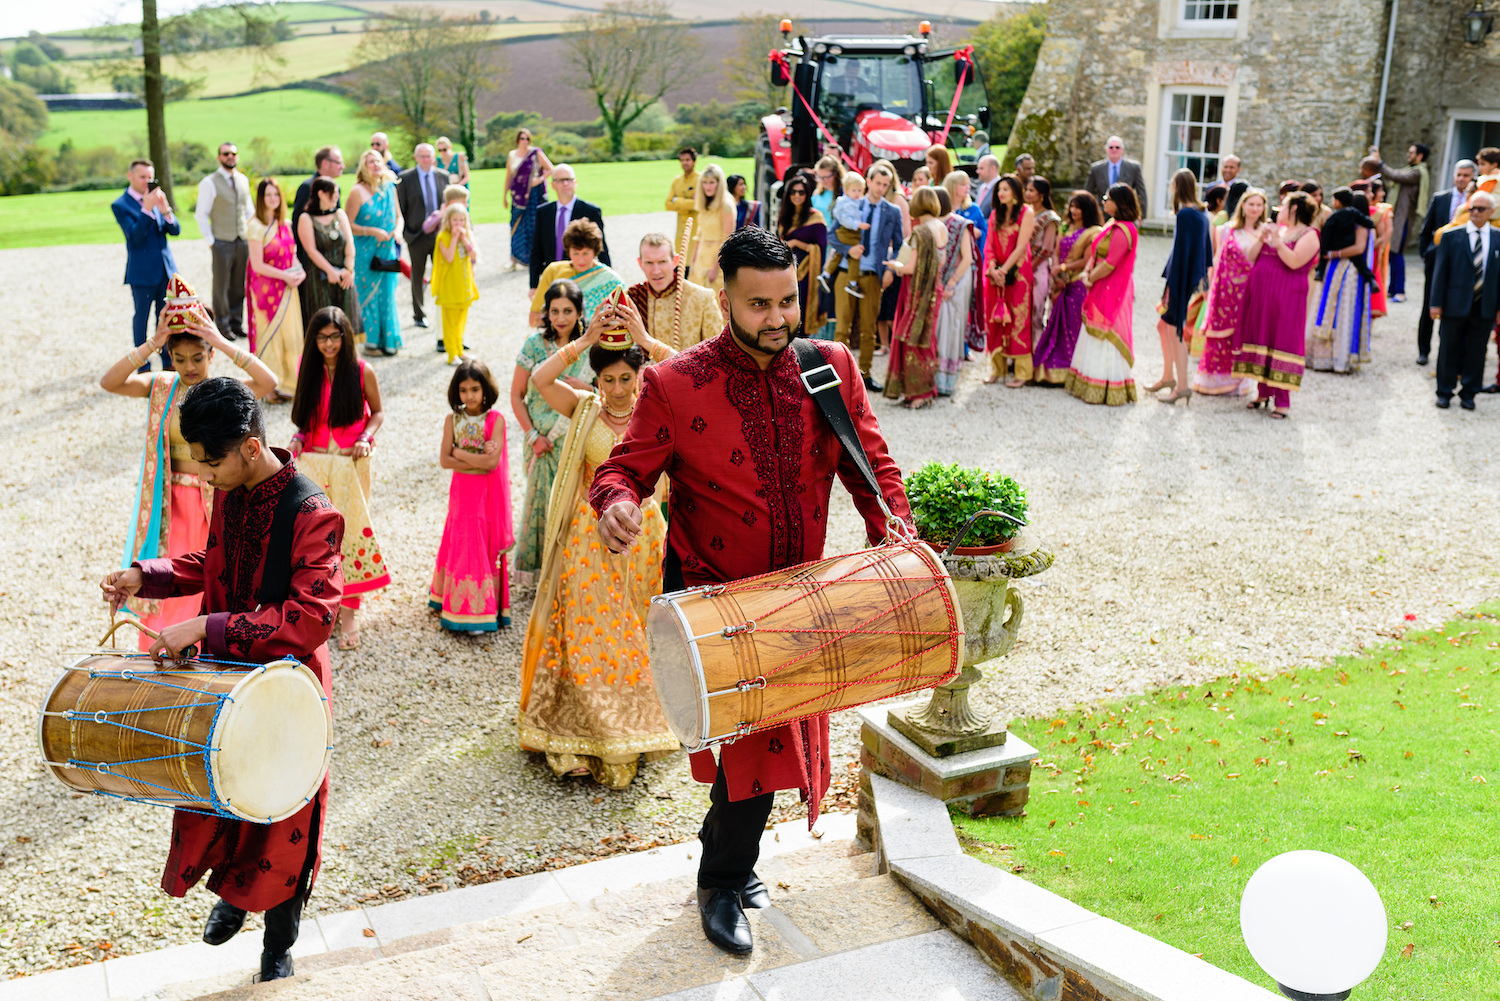 Men play drums pre Indian wedding ceremony